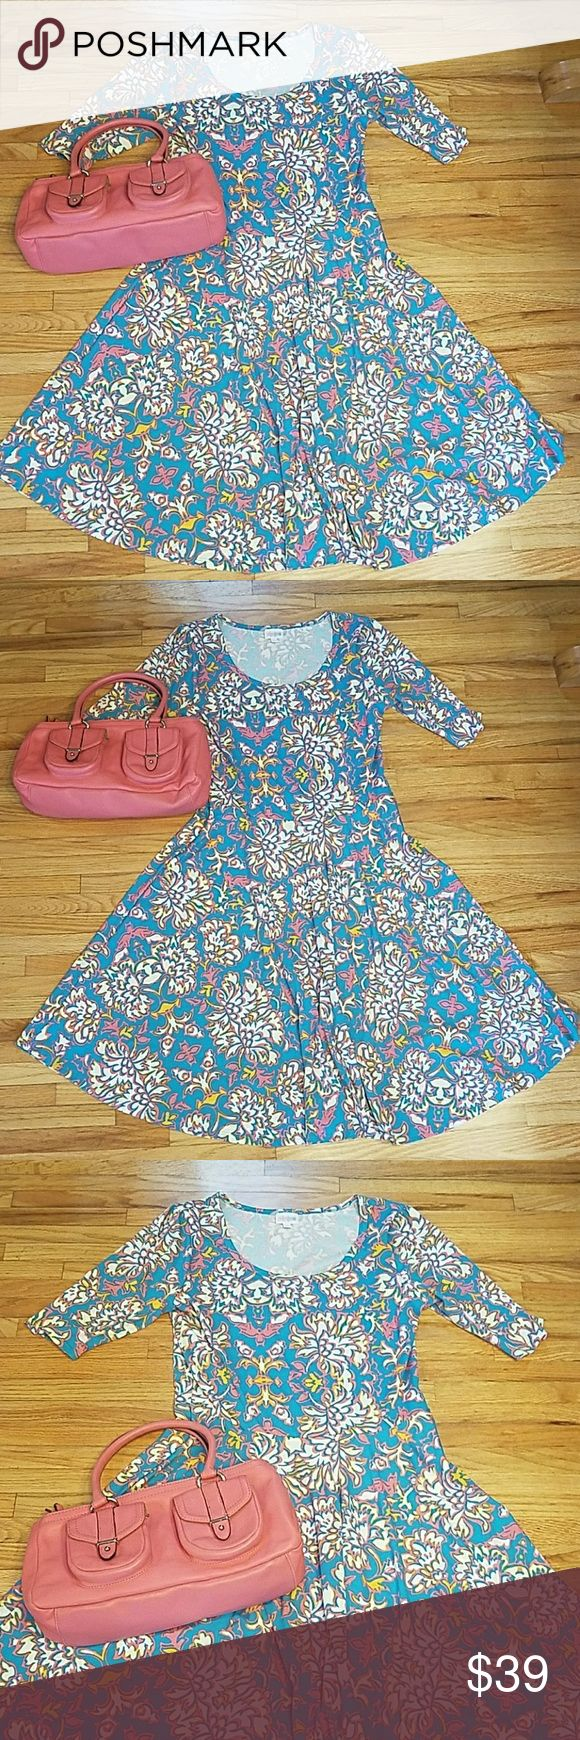 Lularoe Nicole Dress XL Turquoise & Coral Floral Lularoe Nicole Dress XL Turquoise & Coral Floral dress. Beauty of a dress ready for anything. Great stretch and arms are awesome not tight. Matching Purse is also for sale in my closet. See Lularoe sizing, ask questions and Happy Poshing! LuLaRoe Dresses Midi